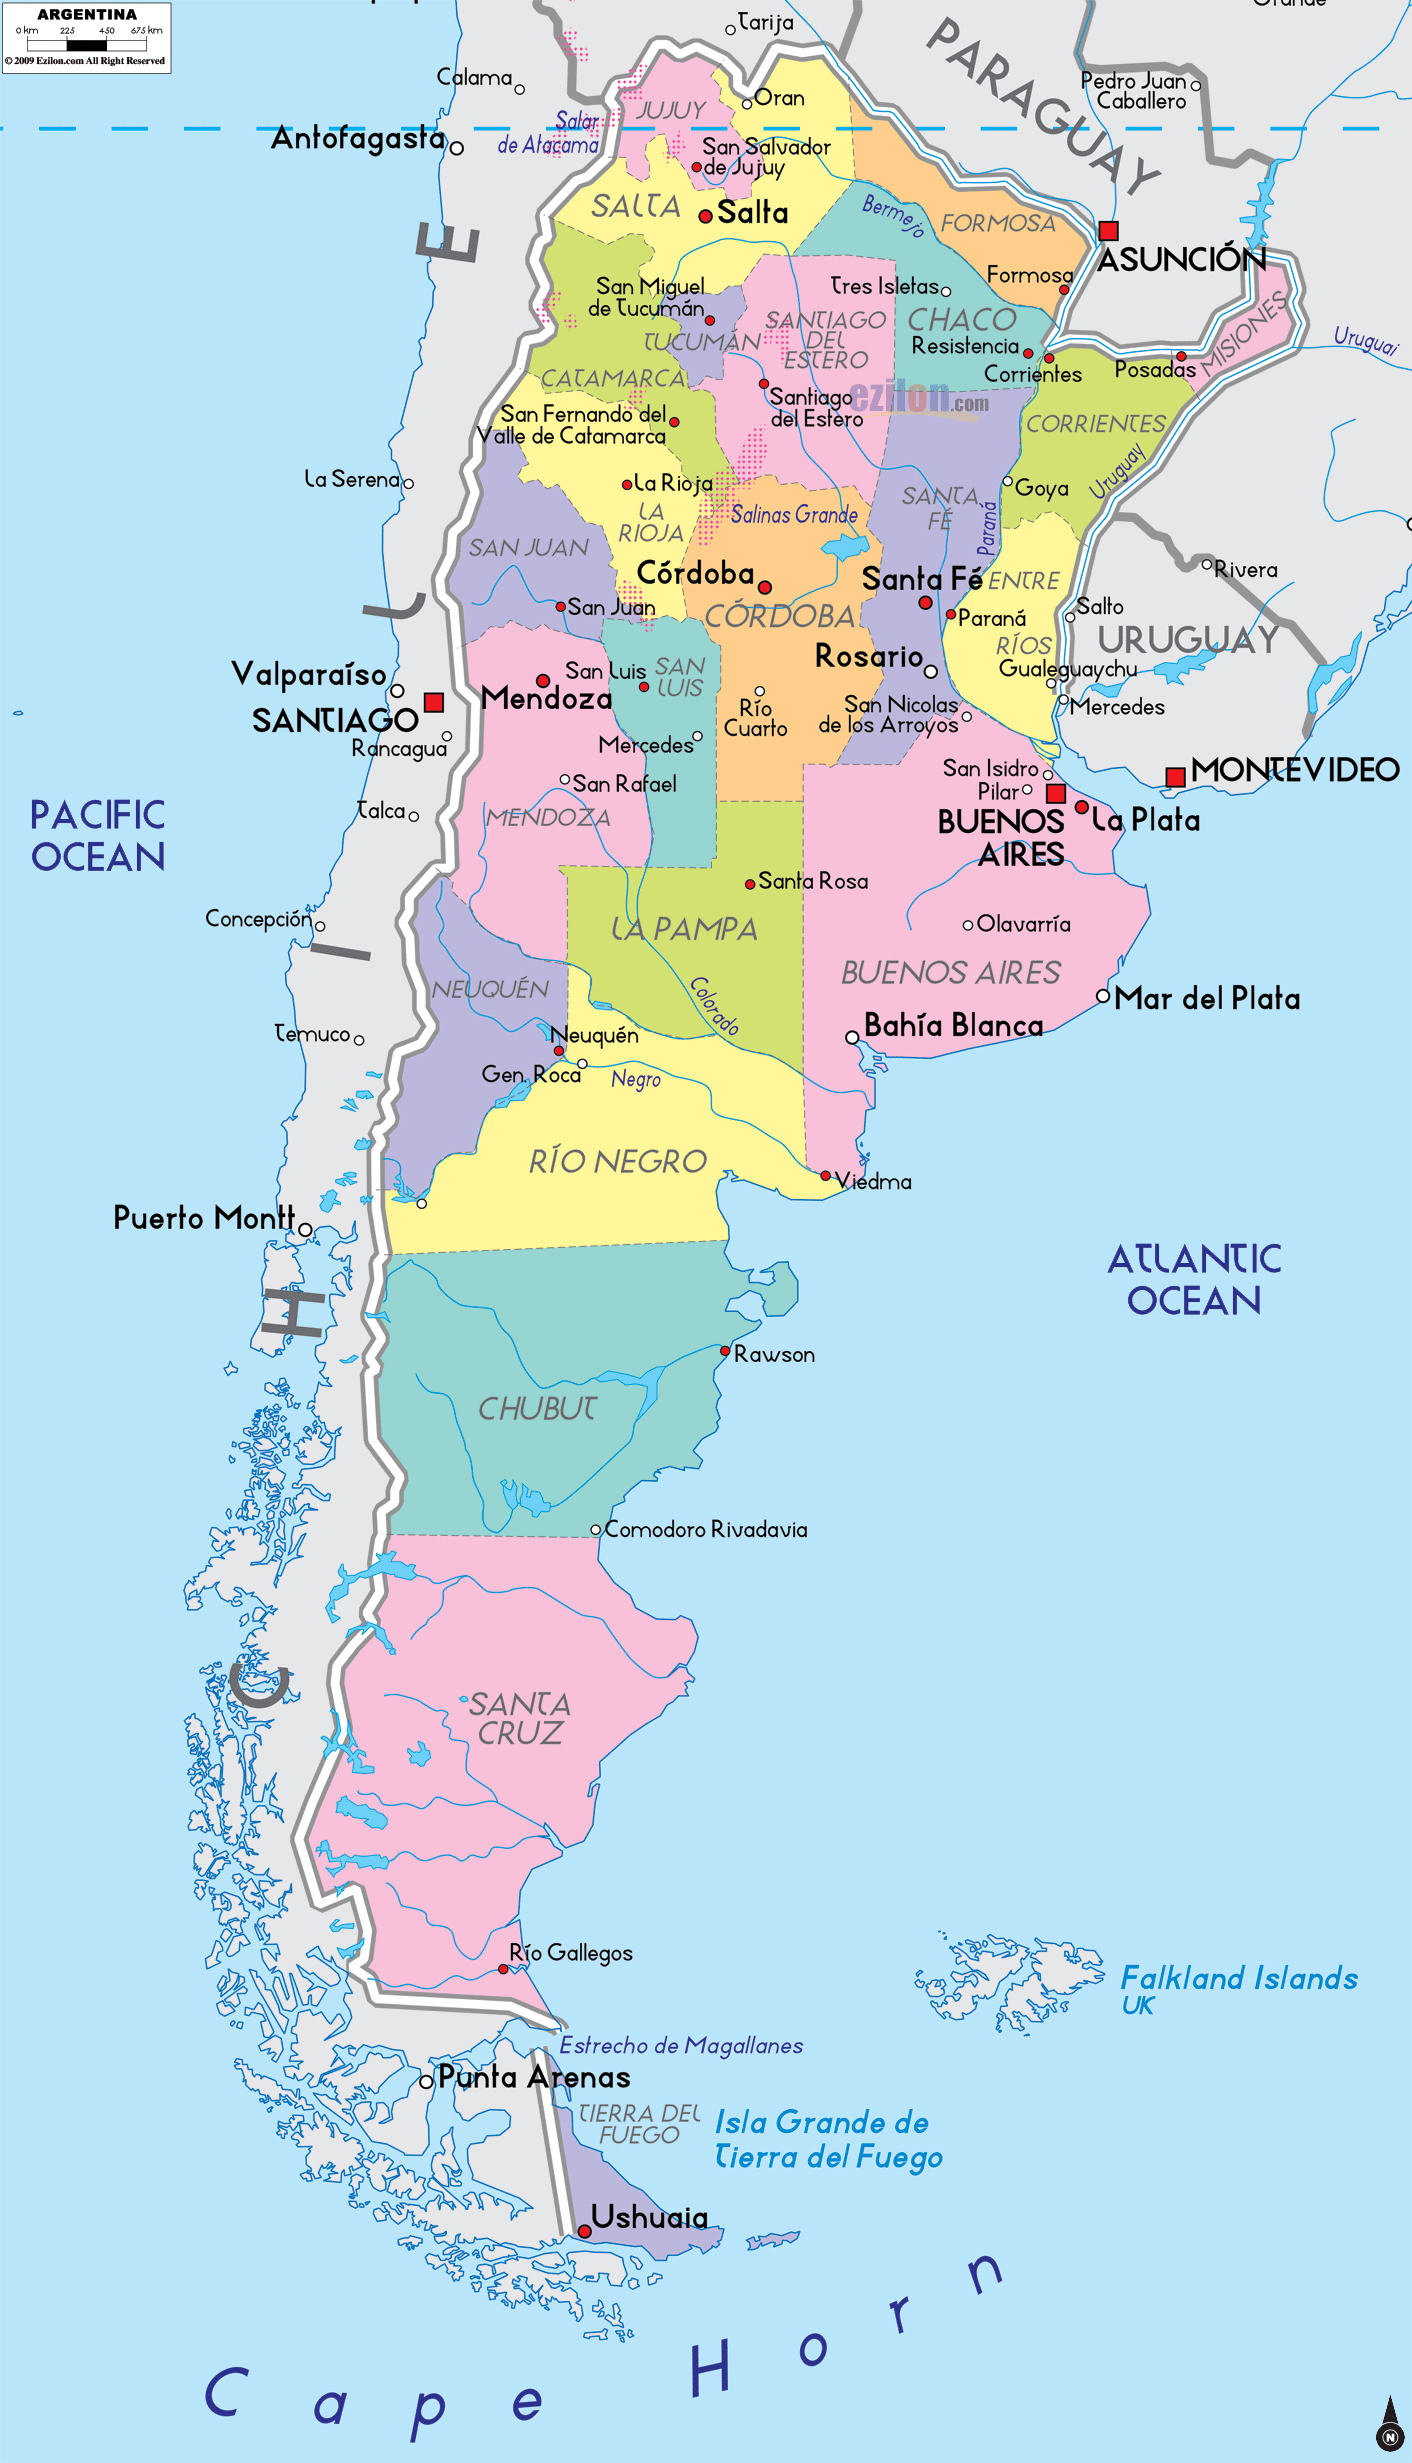 major cities in argentina on a map Large Political And Administrative Map Of Argentina With Major major cities in argentina on a map